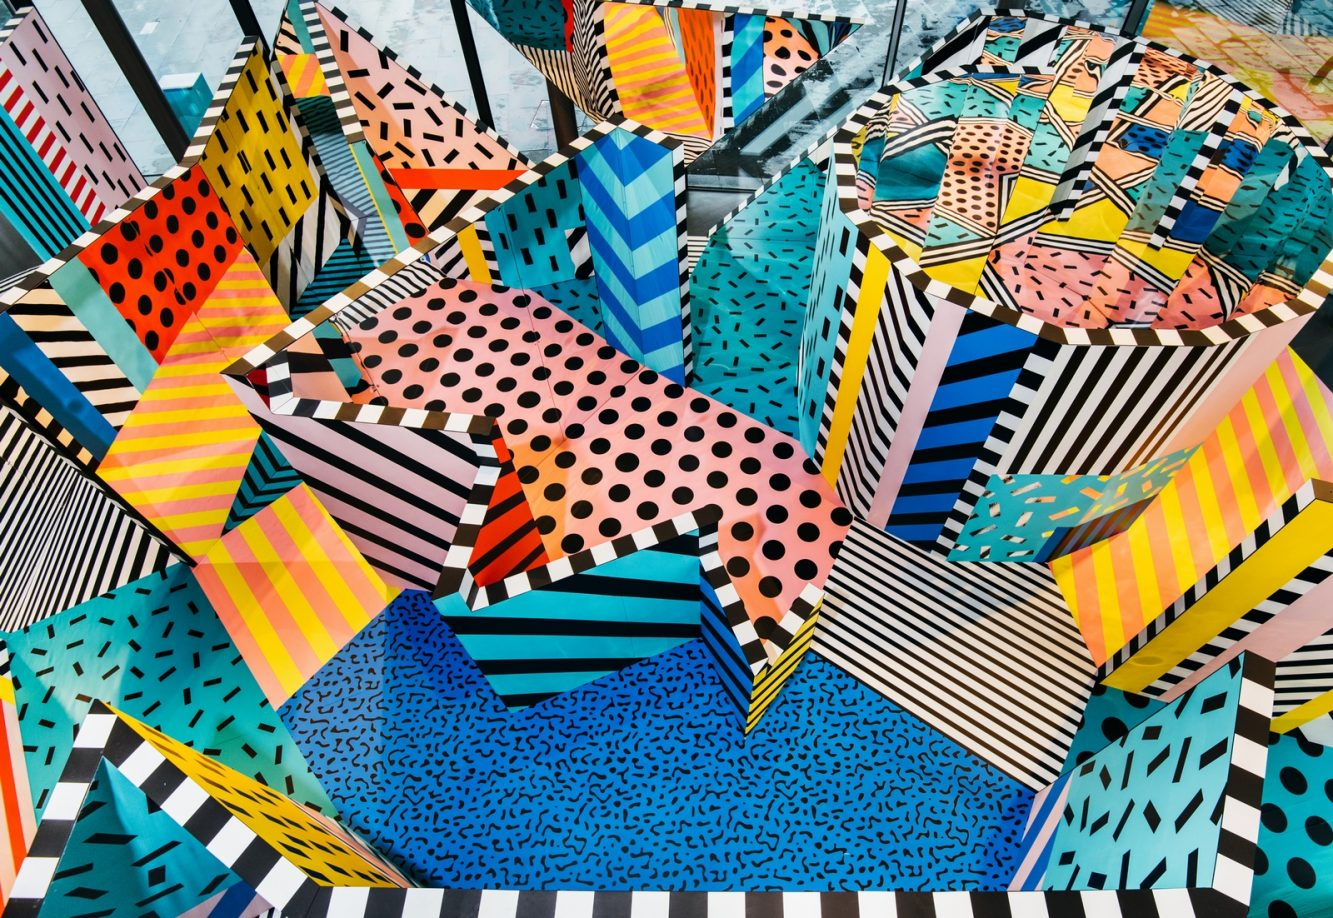 walala-x-play-by-camille-walala-for-now-gallery-photography-by-charles-emerson-by-heimtextil-trend-book (Copiar)